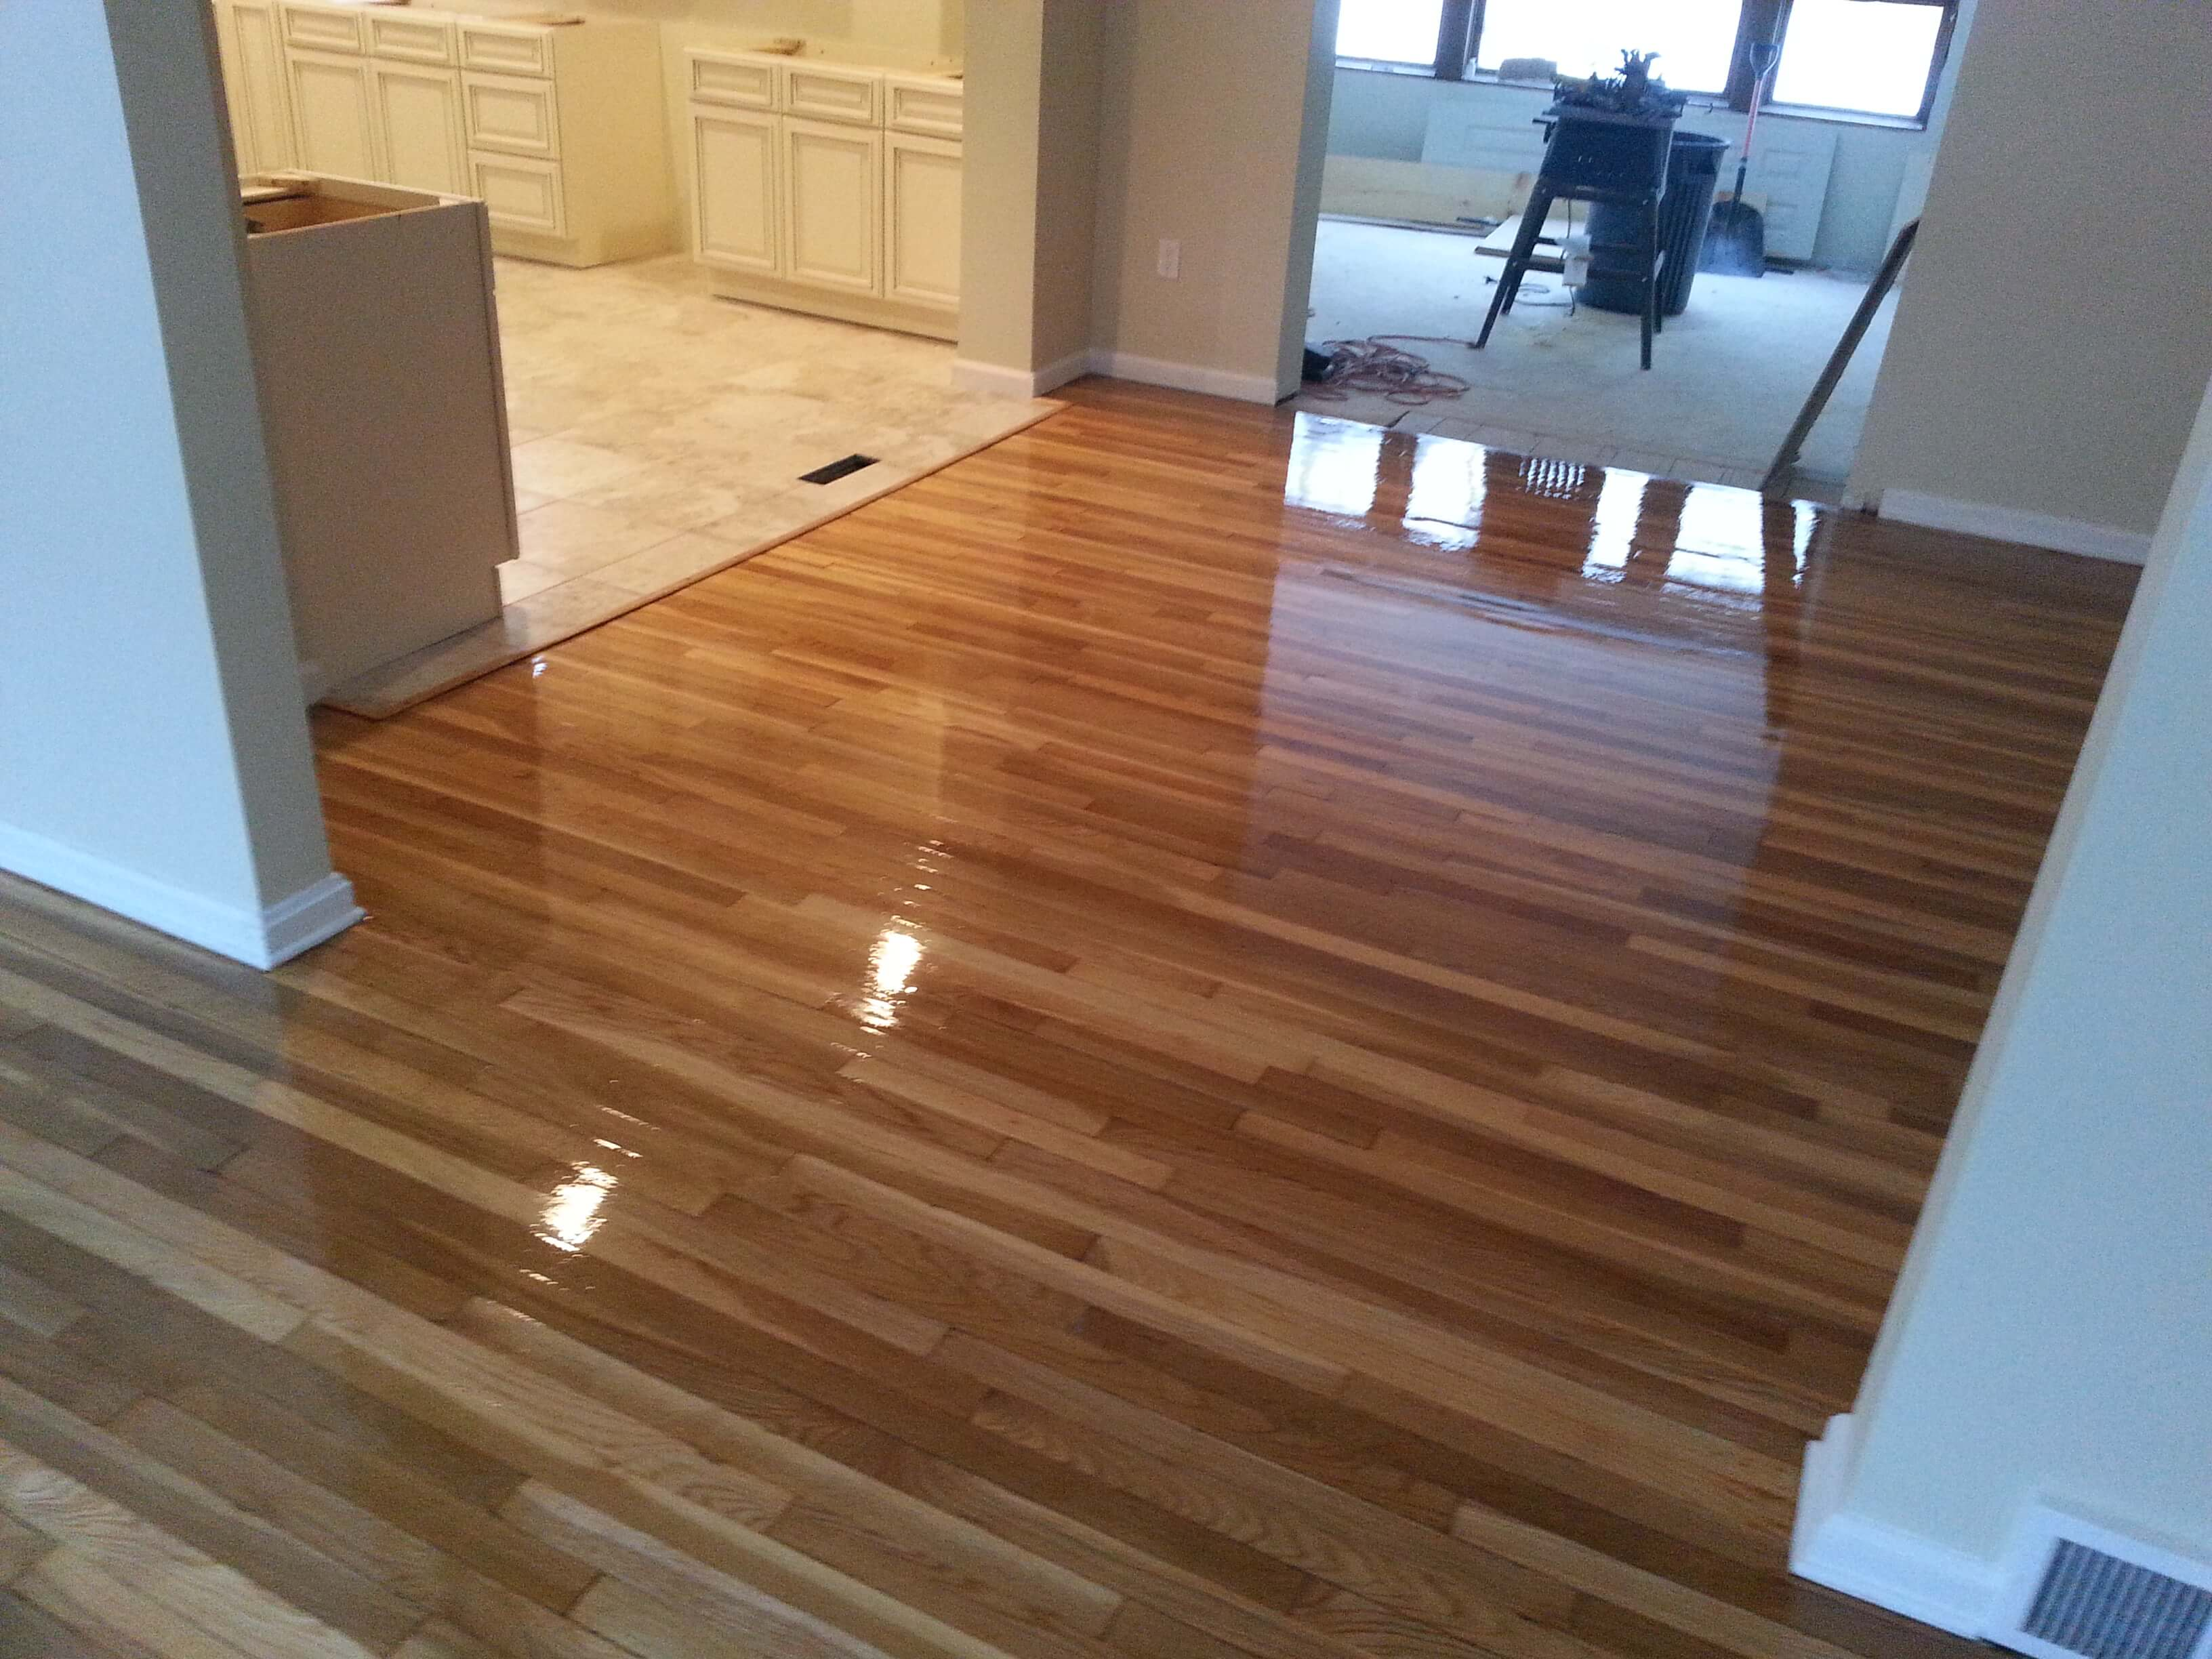 hardwood floor resurfacing in pittsburgh, PA